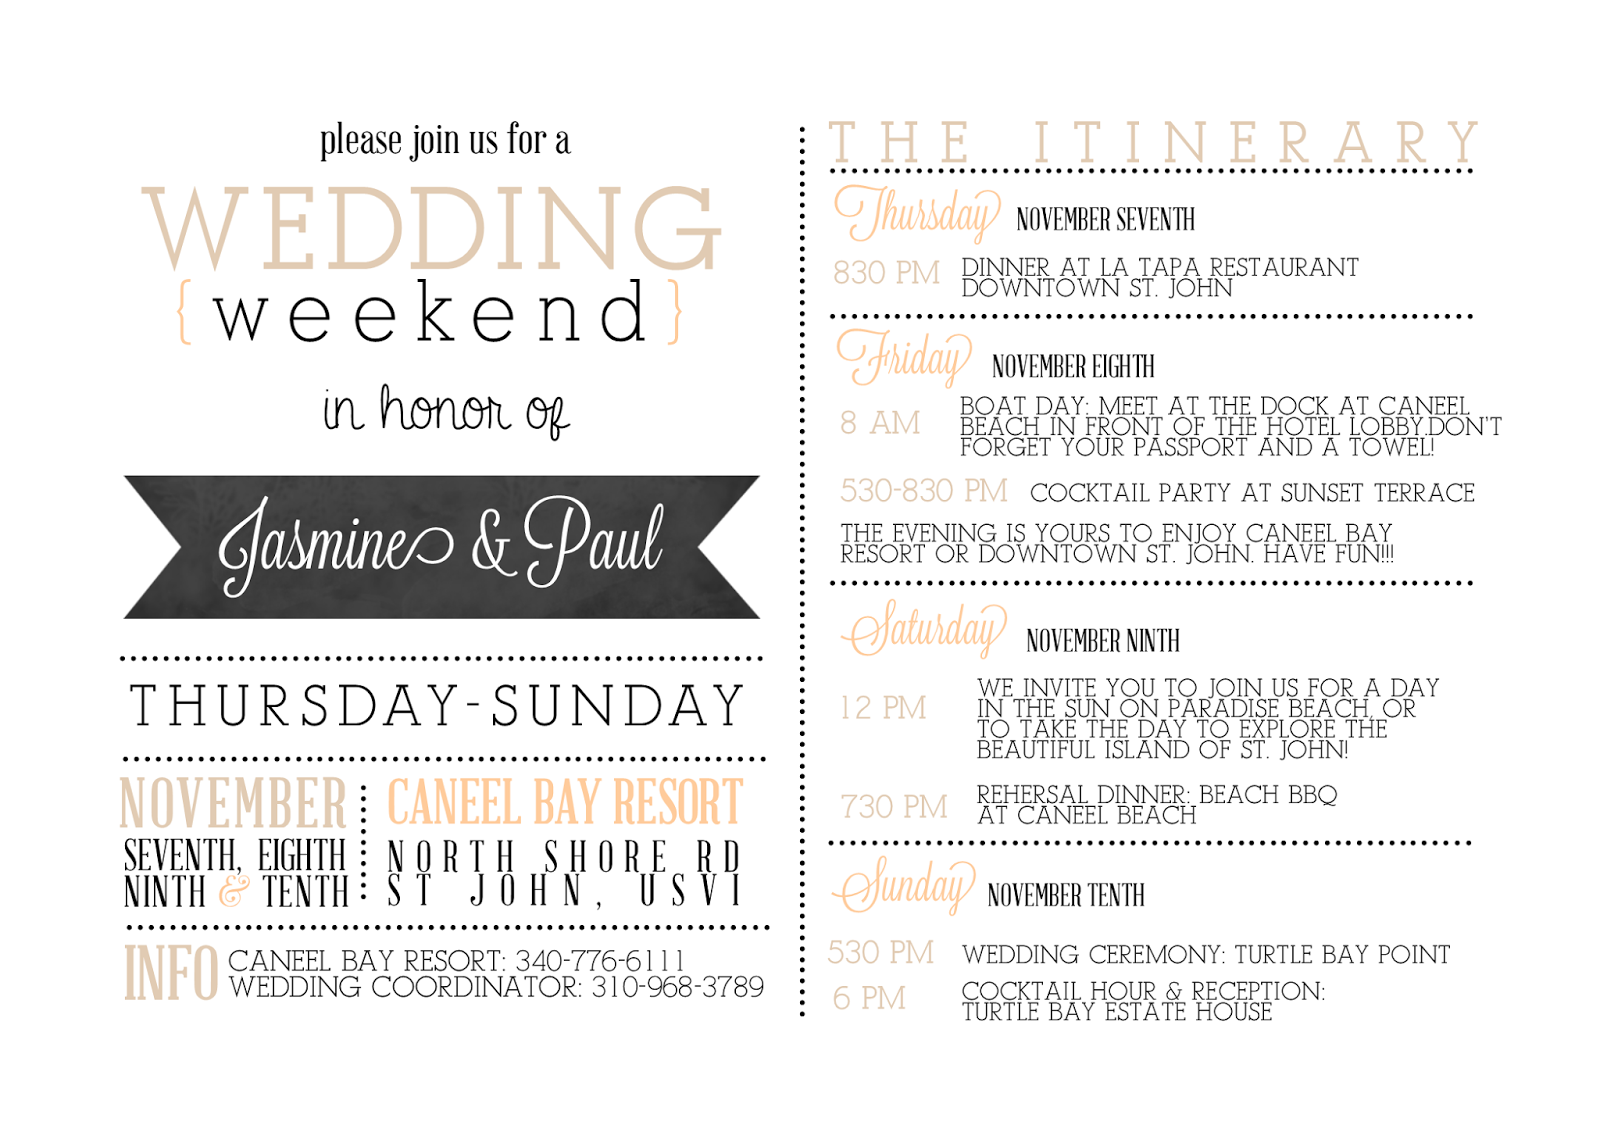 Weekend Getaway Invitation with awesome invitations layout